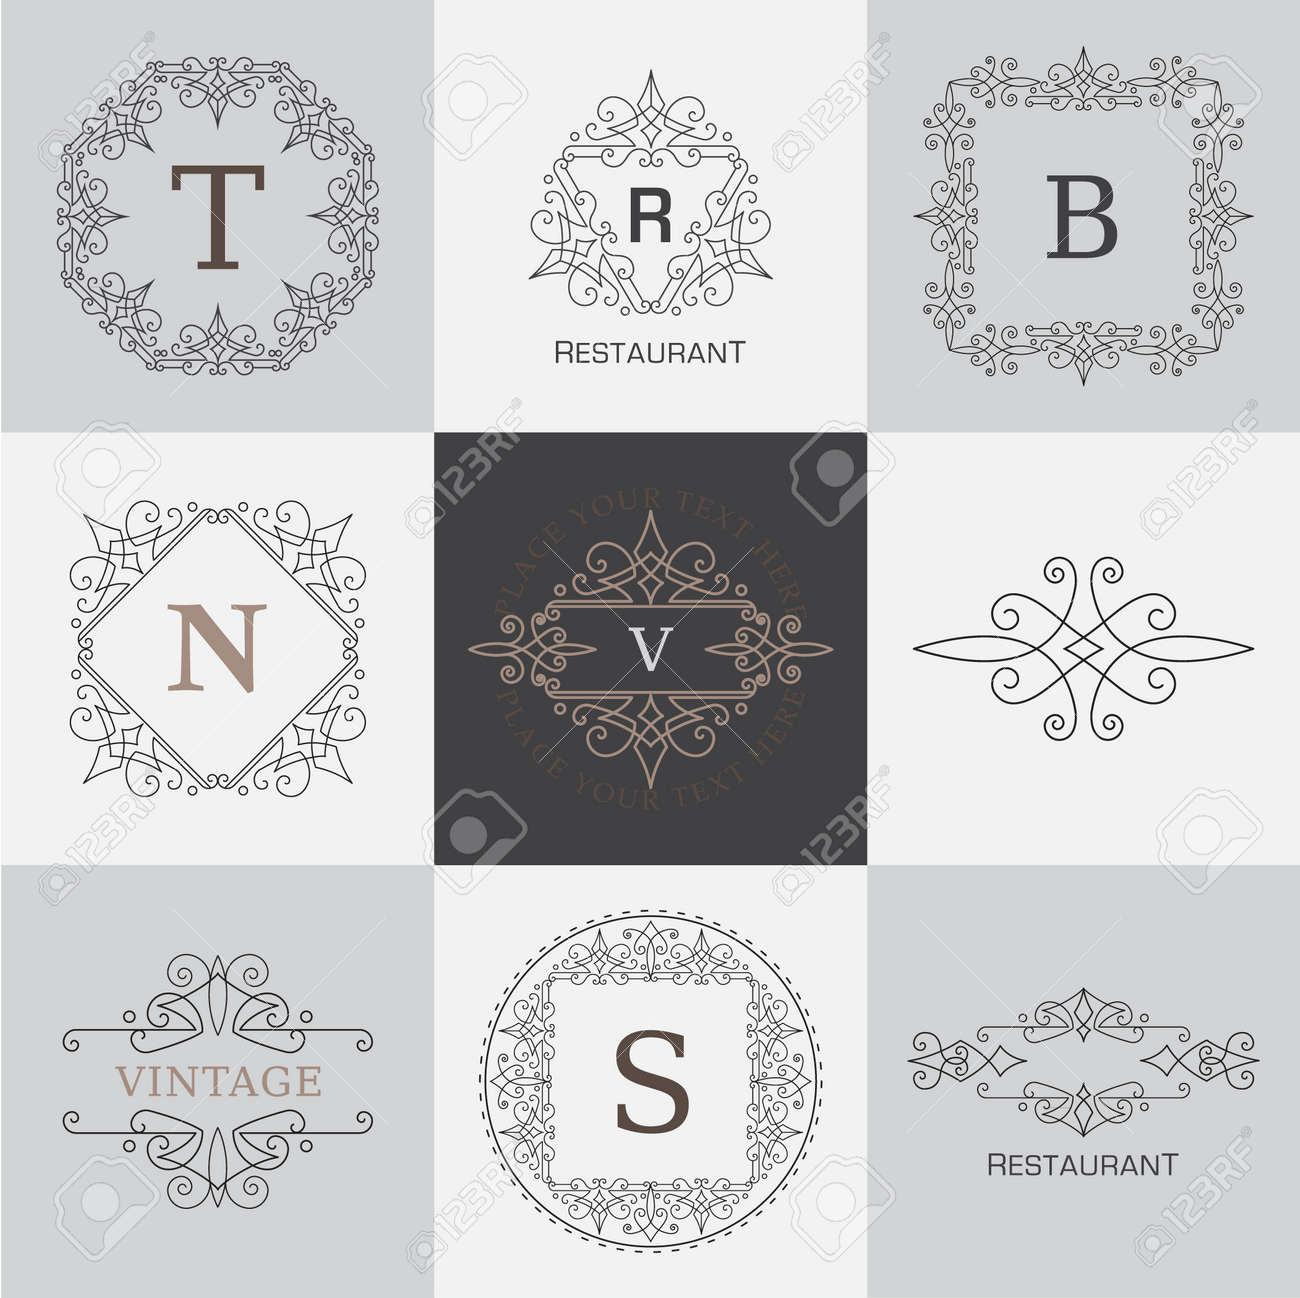 Monogram Letter Template With Flourishes Calligraphic Elegant Ornament Stock Vector